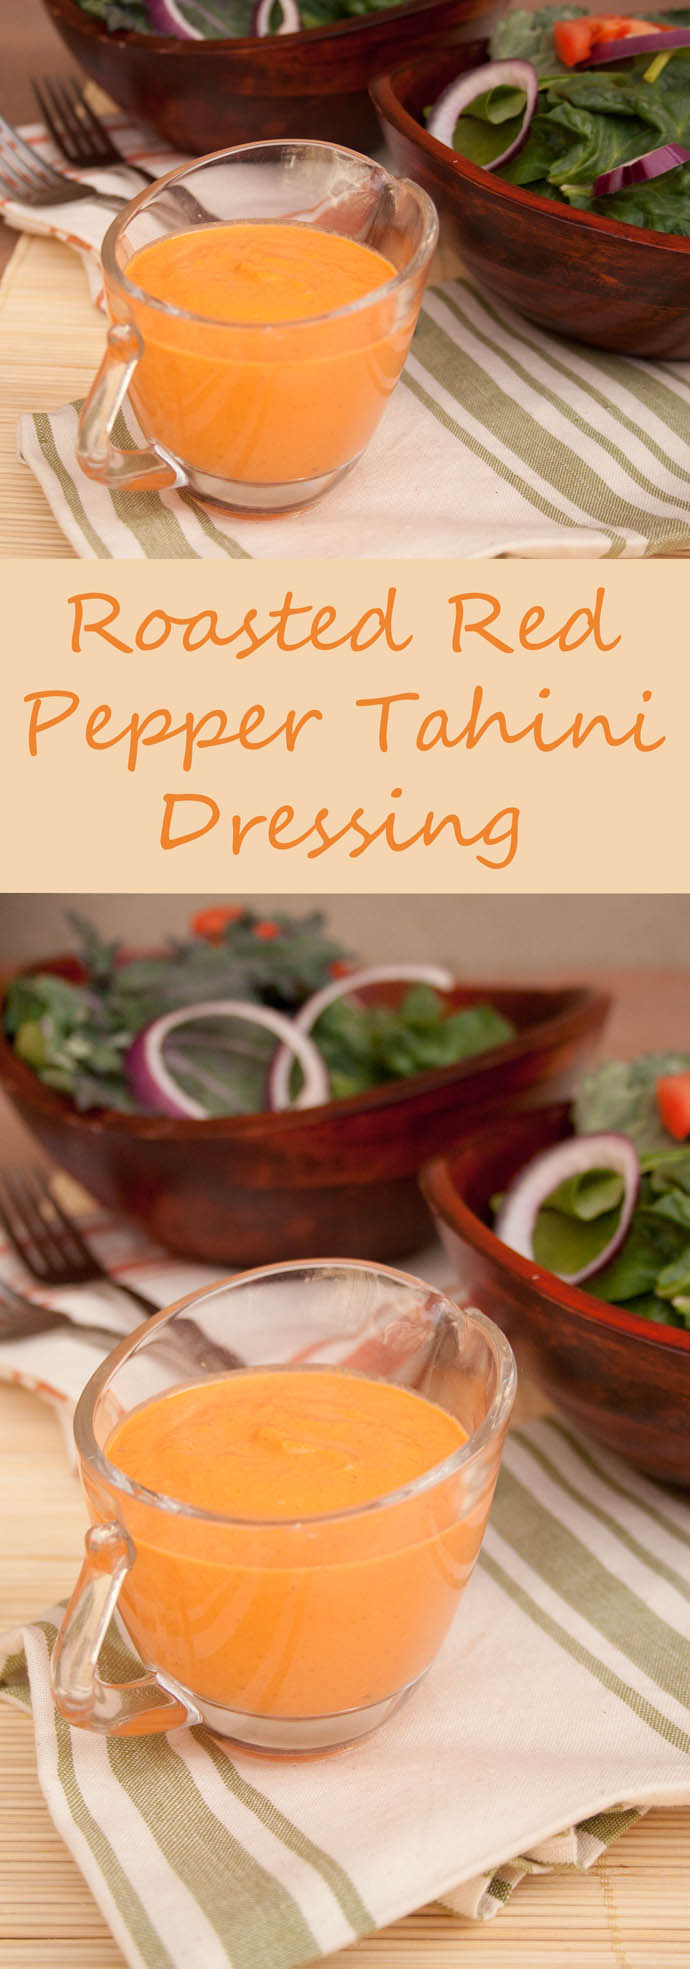 Roasted Red Pepper Tahini Dressing (vegan, gluten free) - This sweet and savory dressing is really versatile. Besides salads, use it as a dipping sauce or sandwich spread.